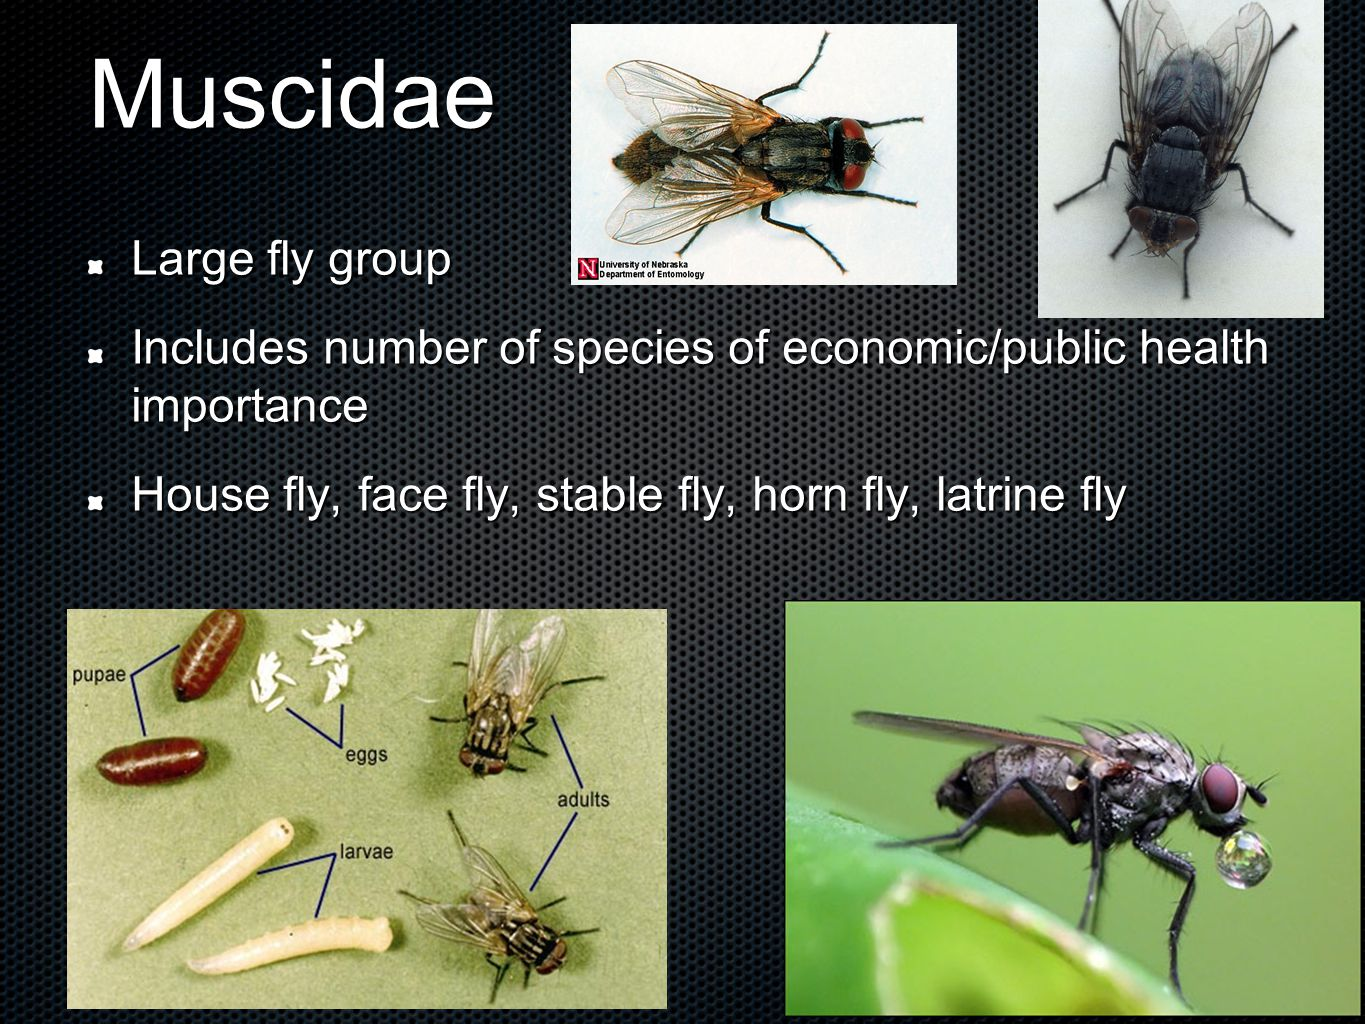 Muscidae Large fly group Includes number of species of economic/public health importance House fly, face fly, stable fly, horn fly, latrine fly